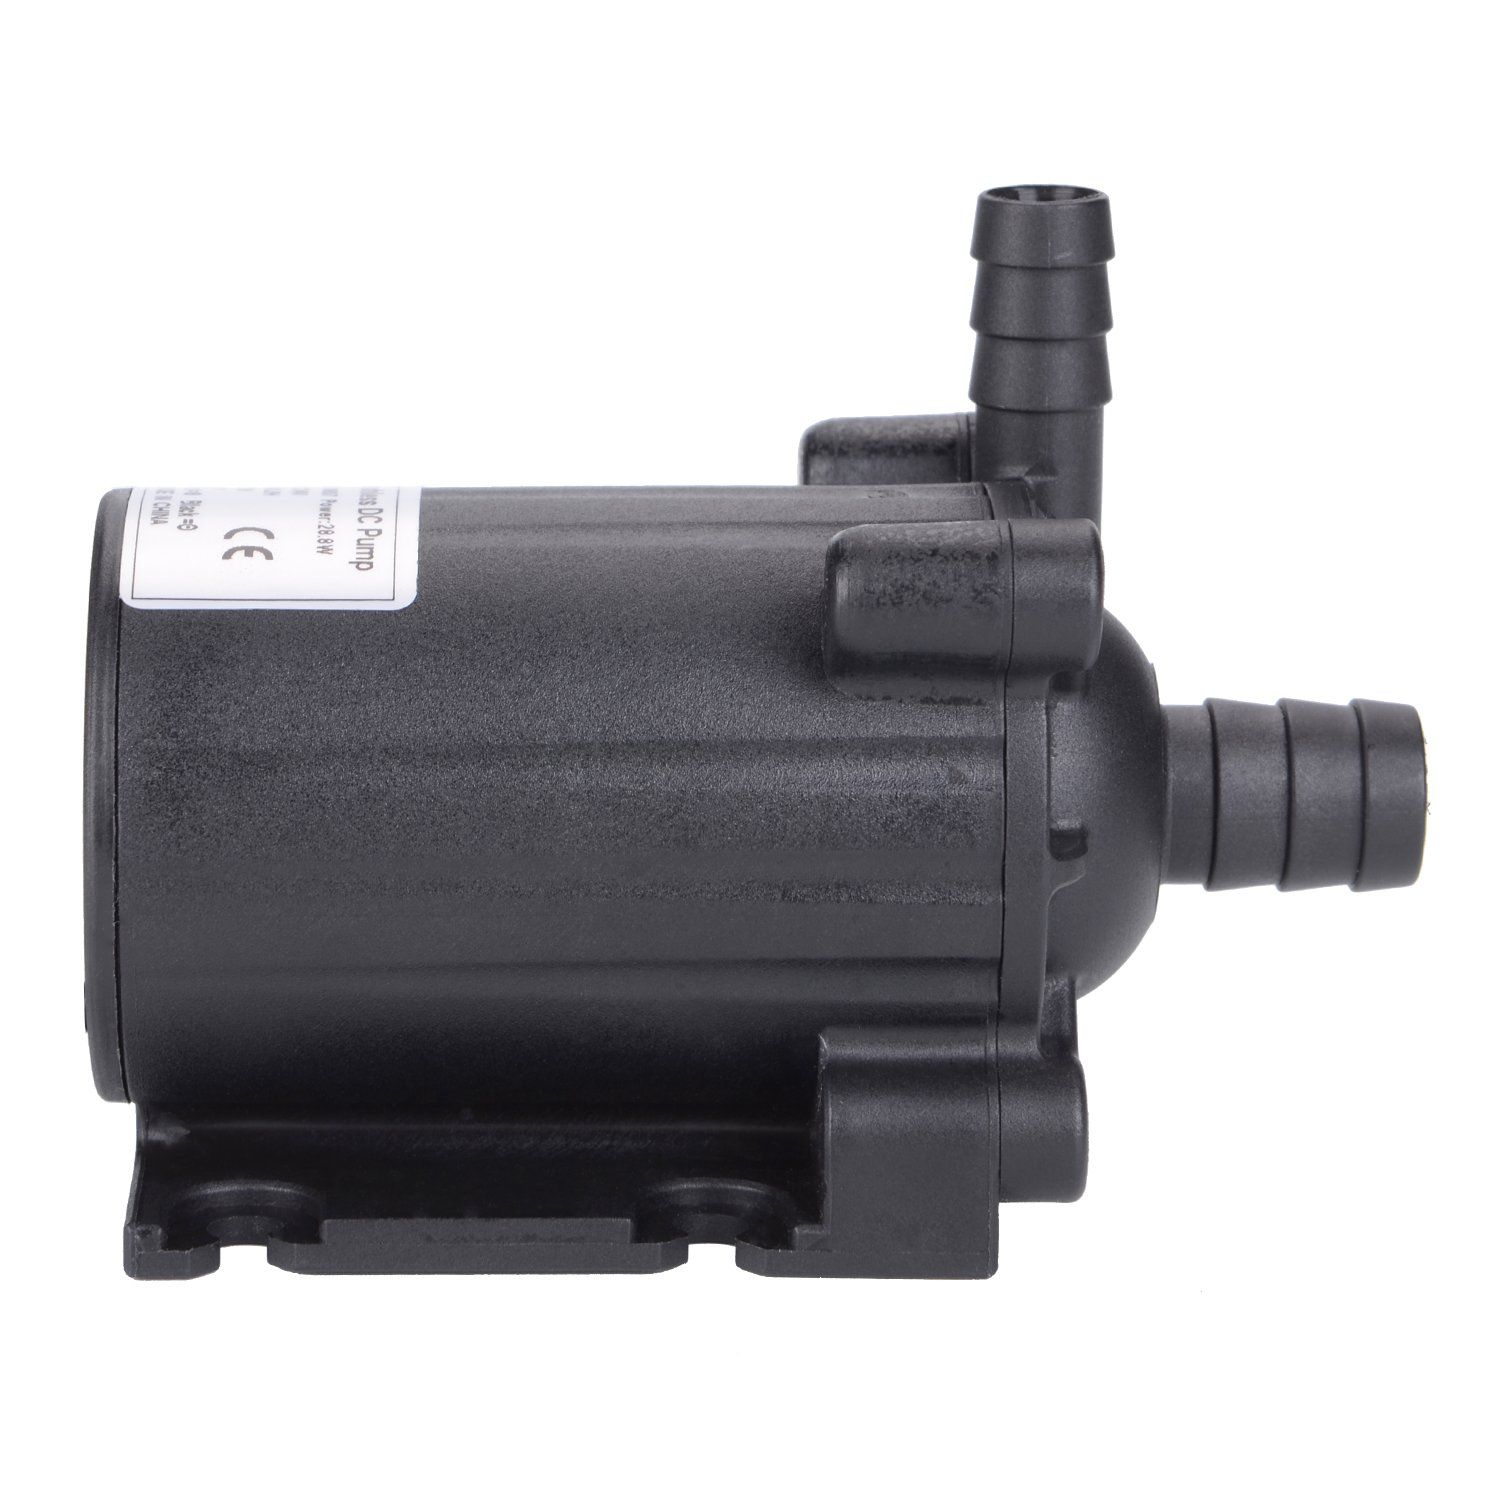 12V Submersible Water Pump Brushless DC Pump for Pond